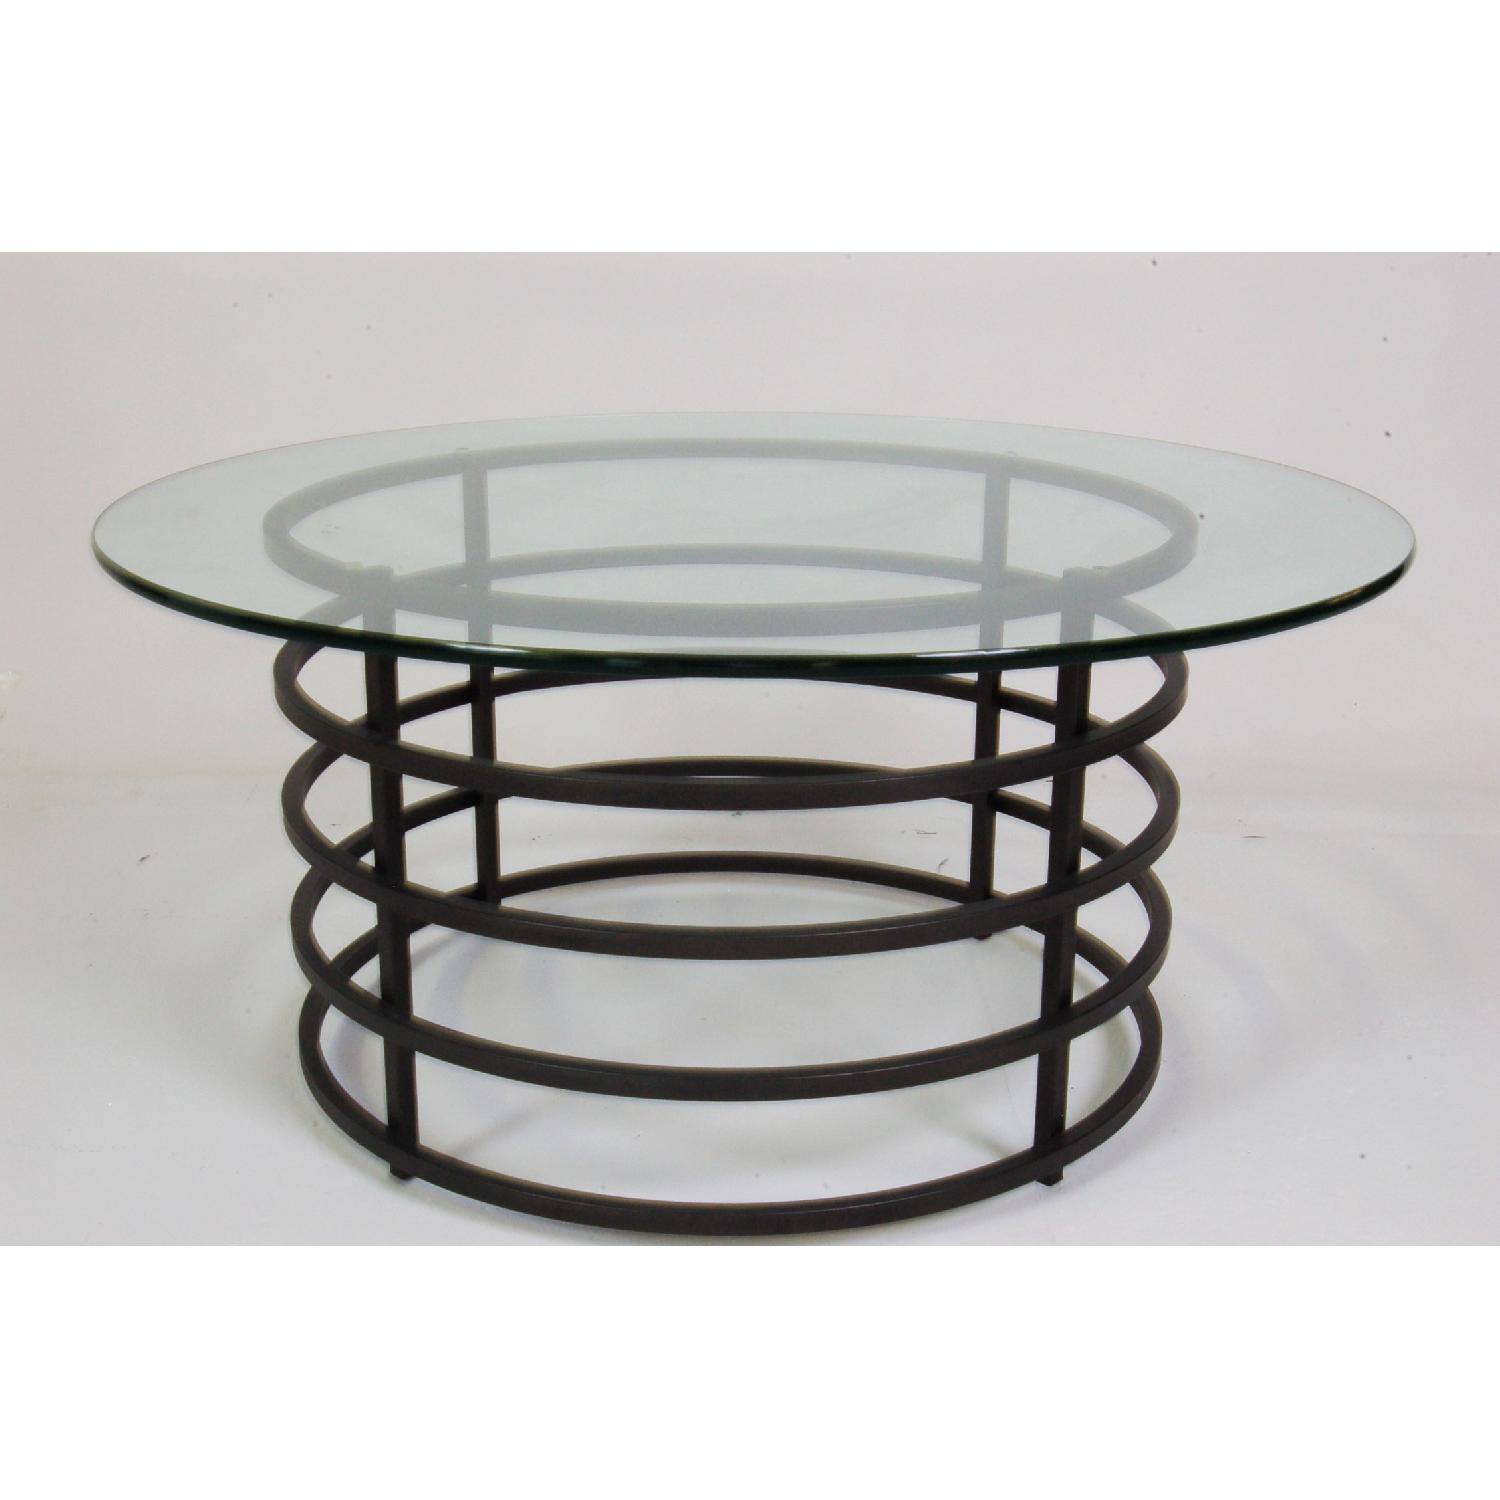 Modern Round Glass-Top Coffee Table - image-1